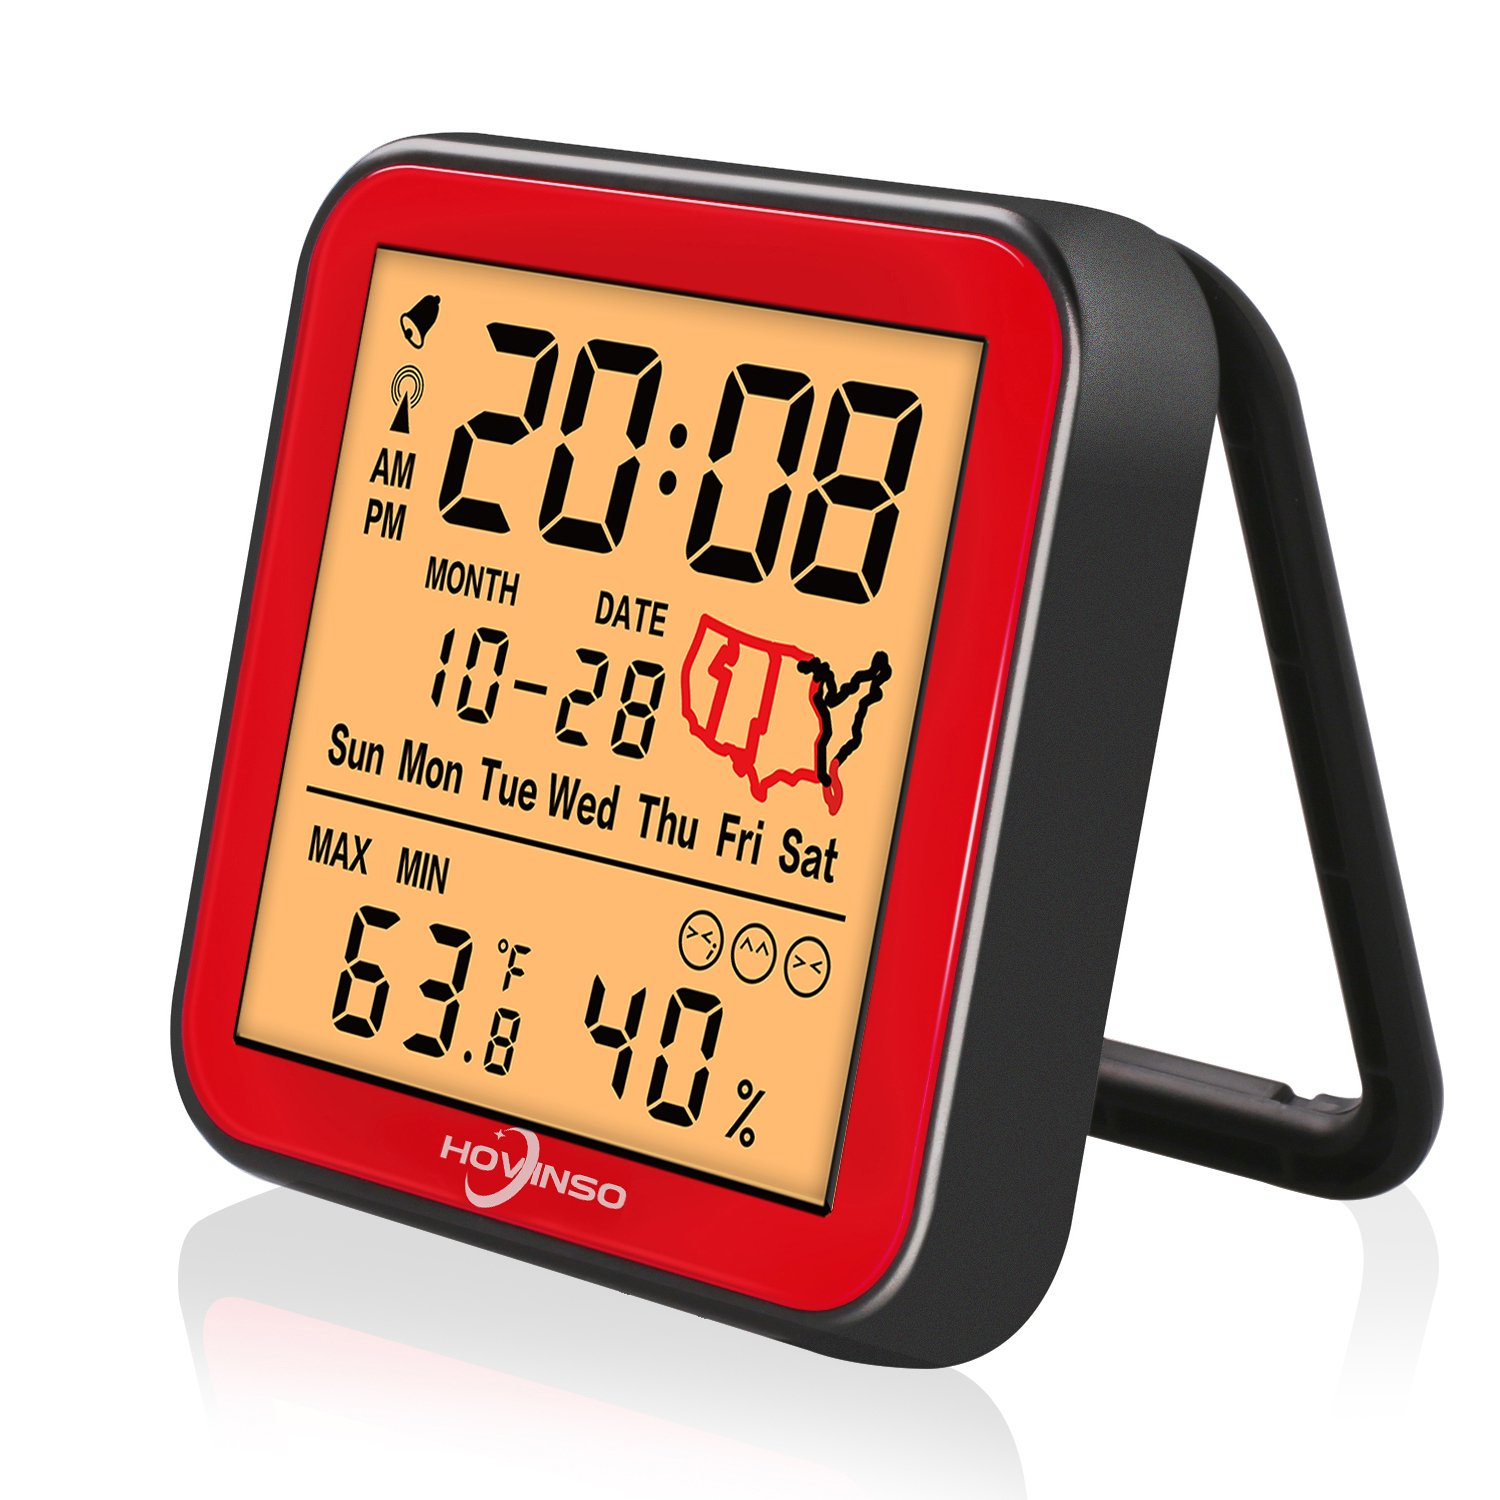 Hovinso Weather Station Clock with Temperature and Humidity Monitor, Indoor Wireless Radio Atomic Alarm Clock for Home Bedroom by Hovinso